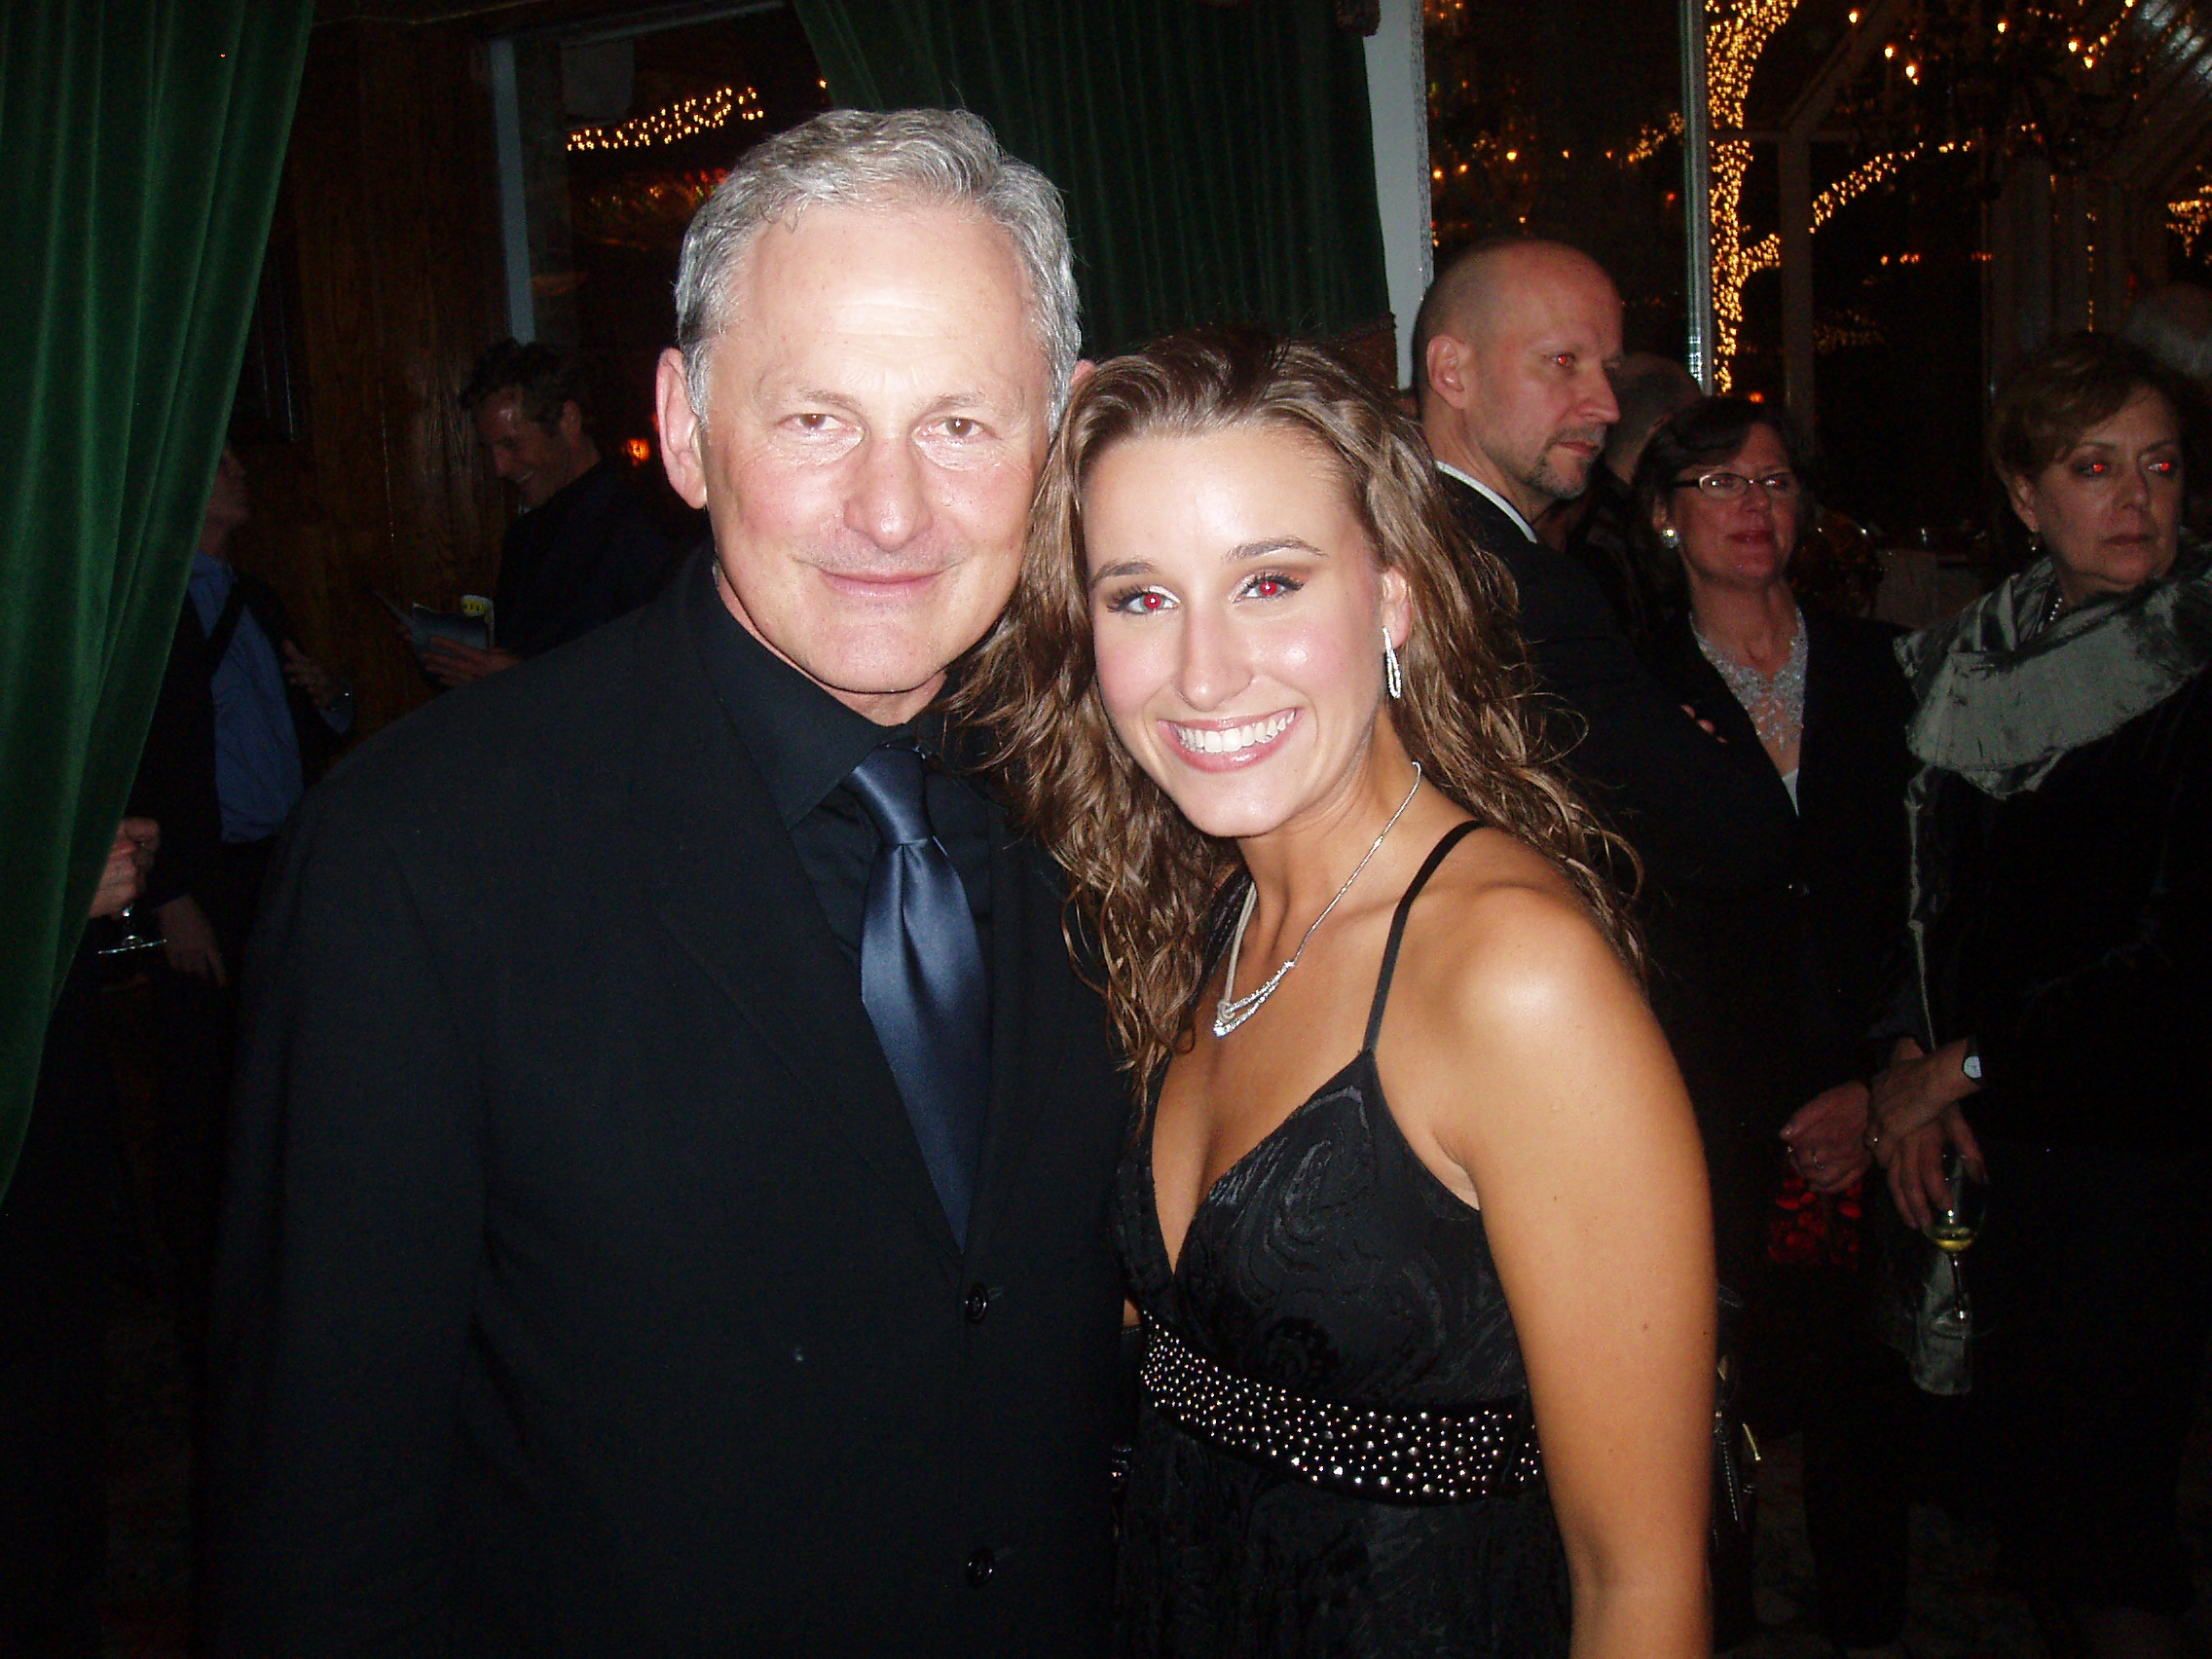 Victor Garber and Lauren at Tavern on the Green